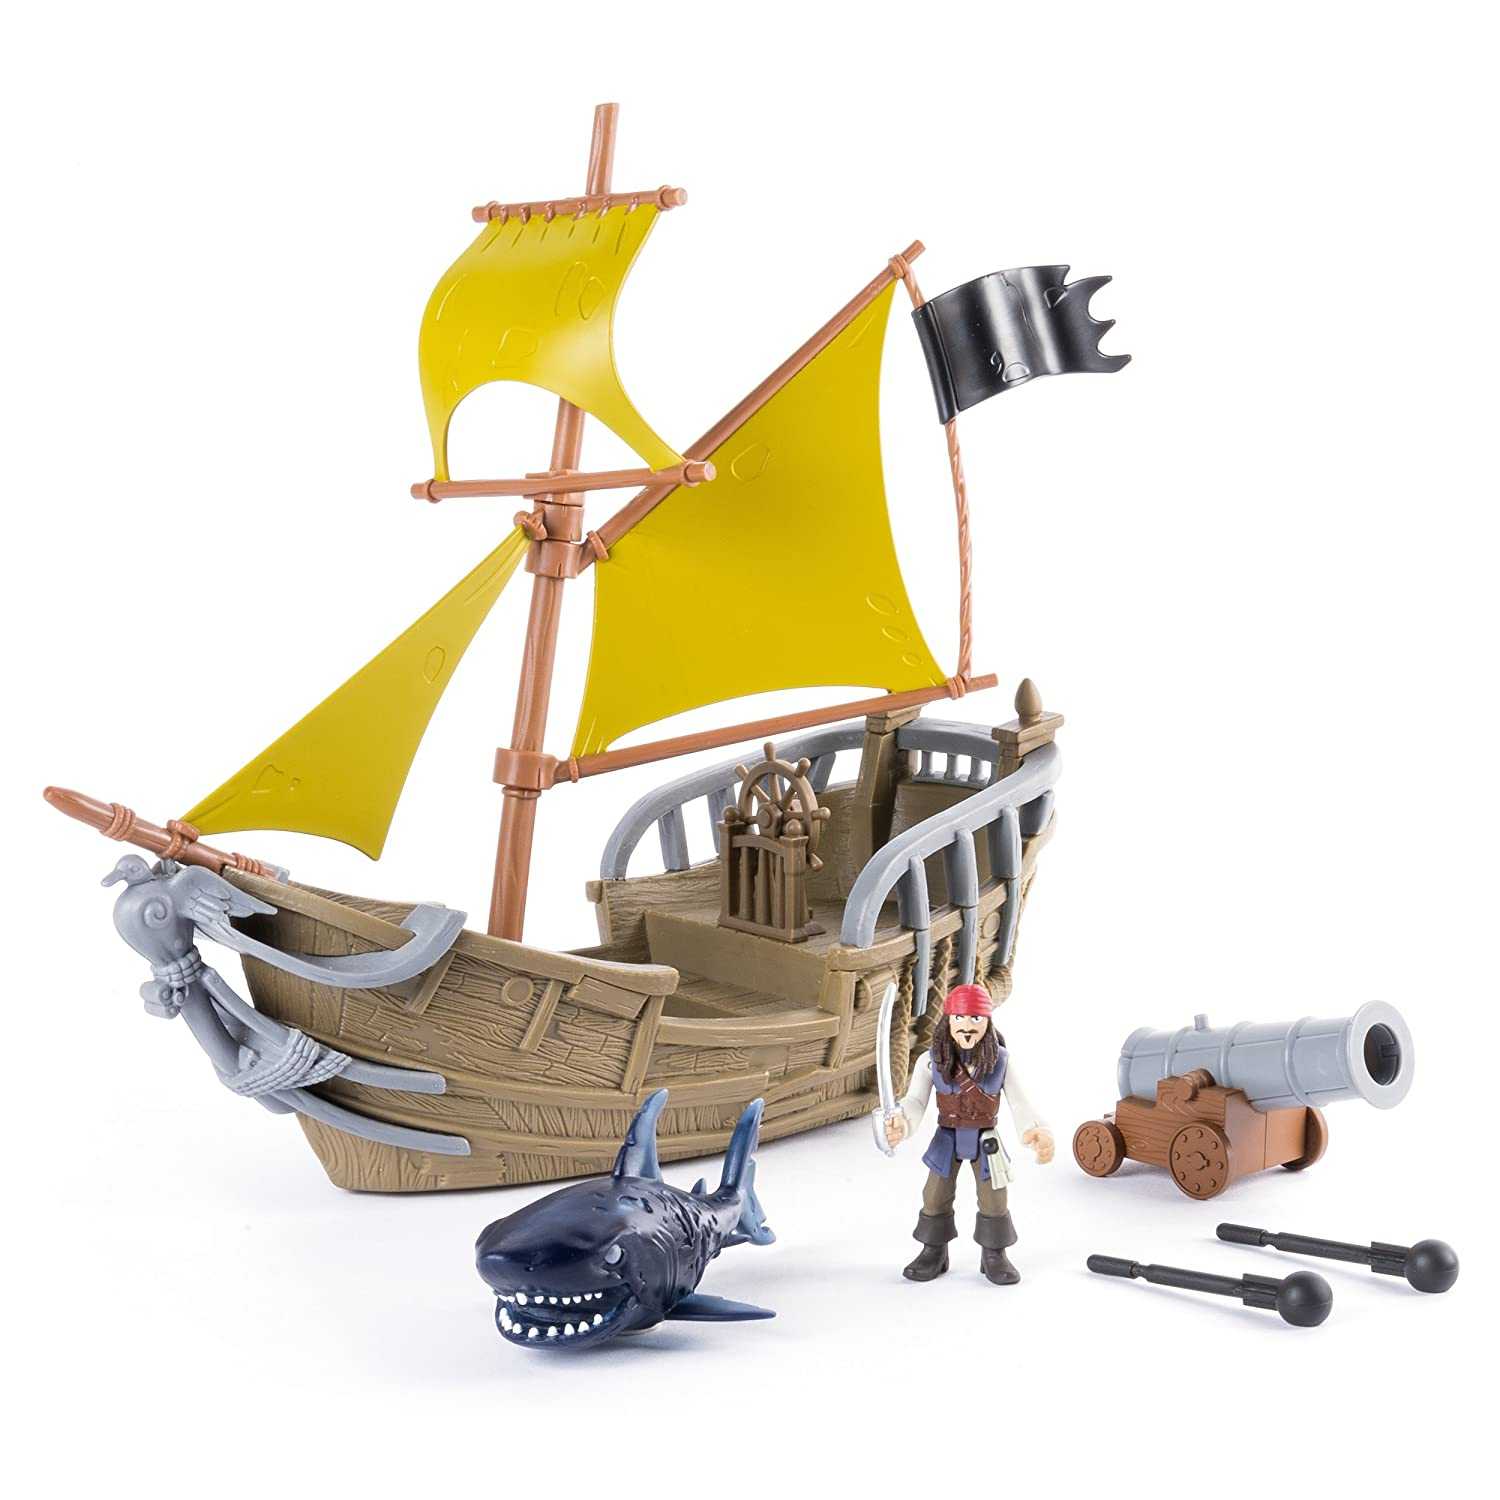 Pirates of the Caribbean: Dead Men Tell No Tales - Jack's Pirate Ship Playset